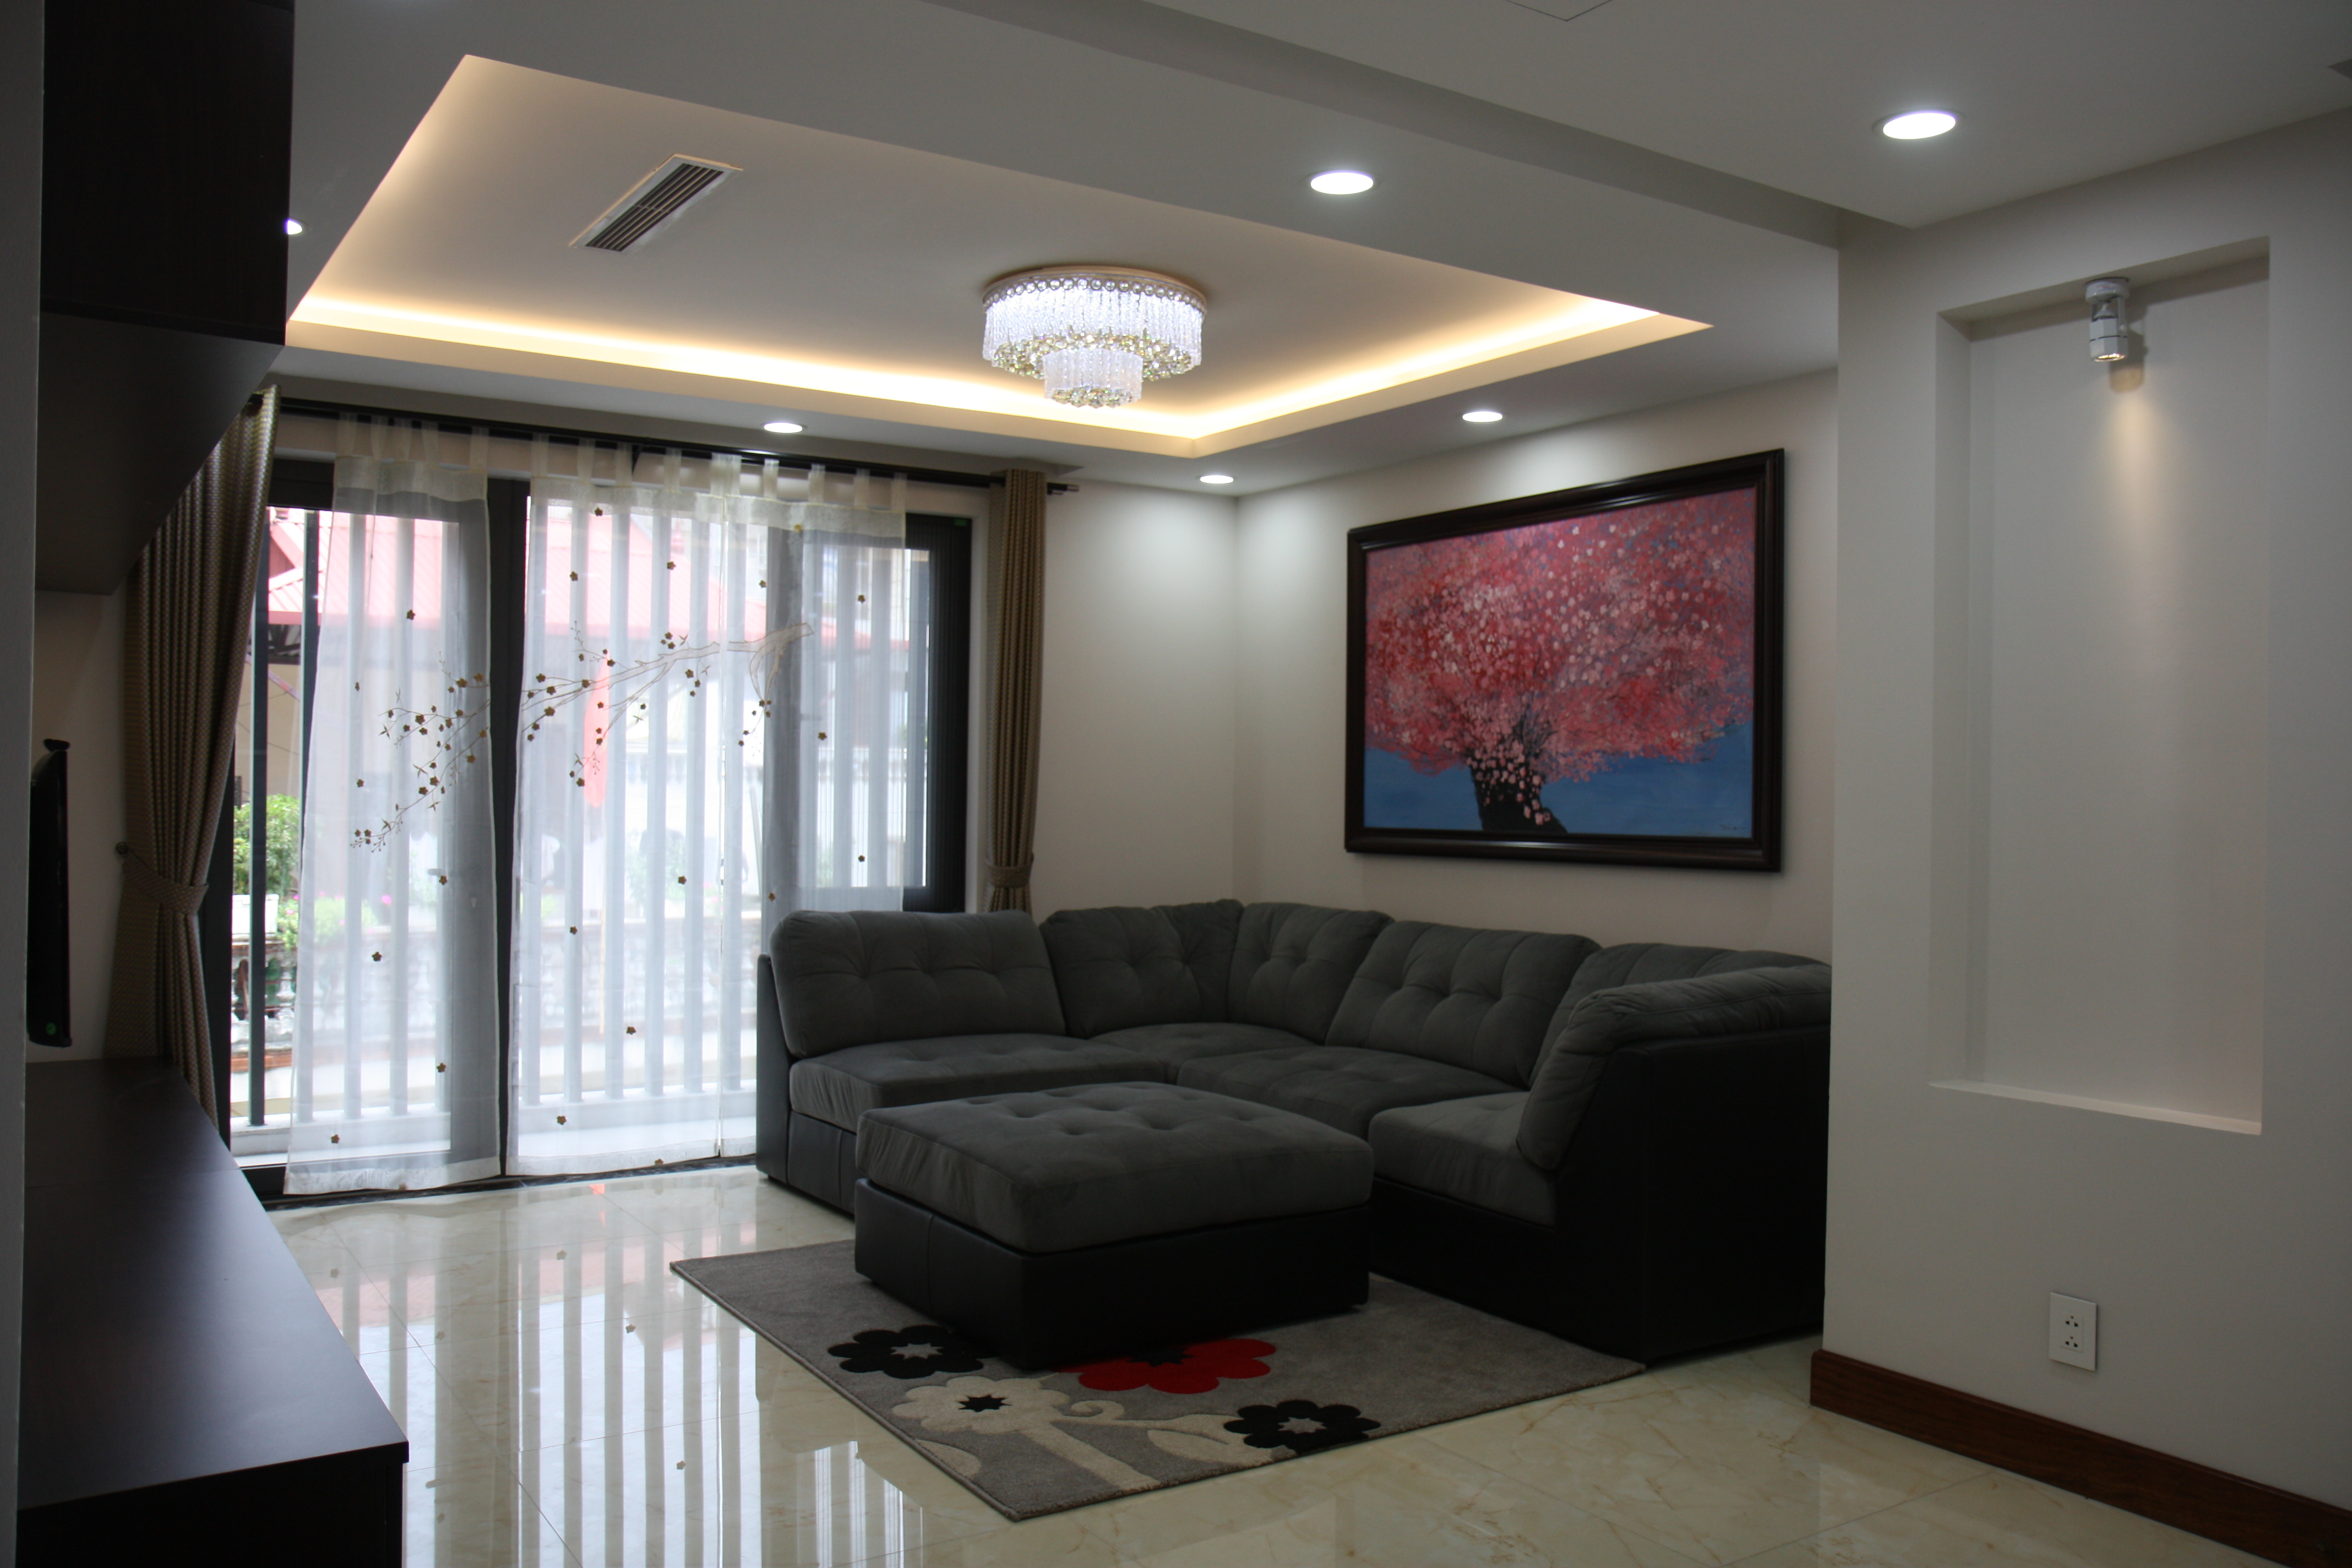 Newly furnished apartment with 2 bedroom for rent in Trich Sai street, Tay Ho, Hanoi